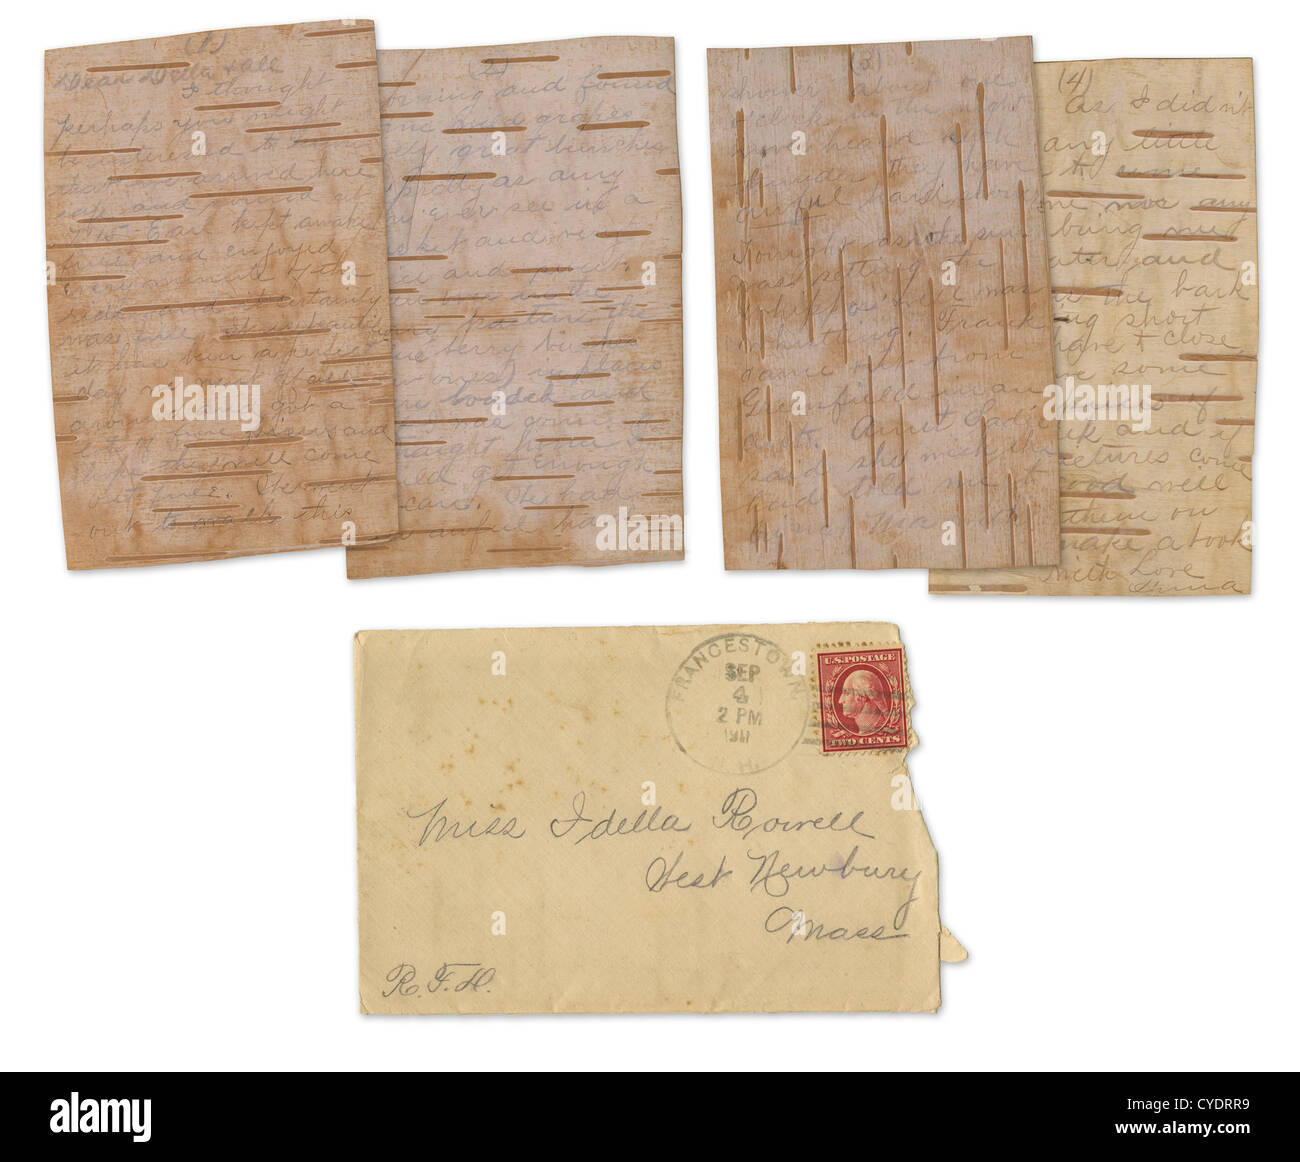 Postmarked 1911 letter on real birch bark paper, from Francestown, New Hampshire. - Stock Image